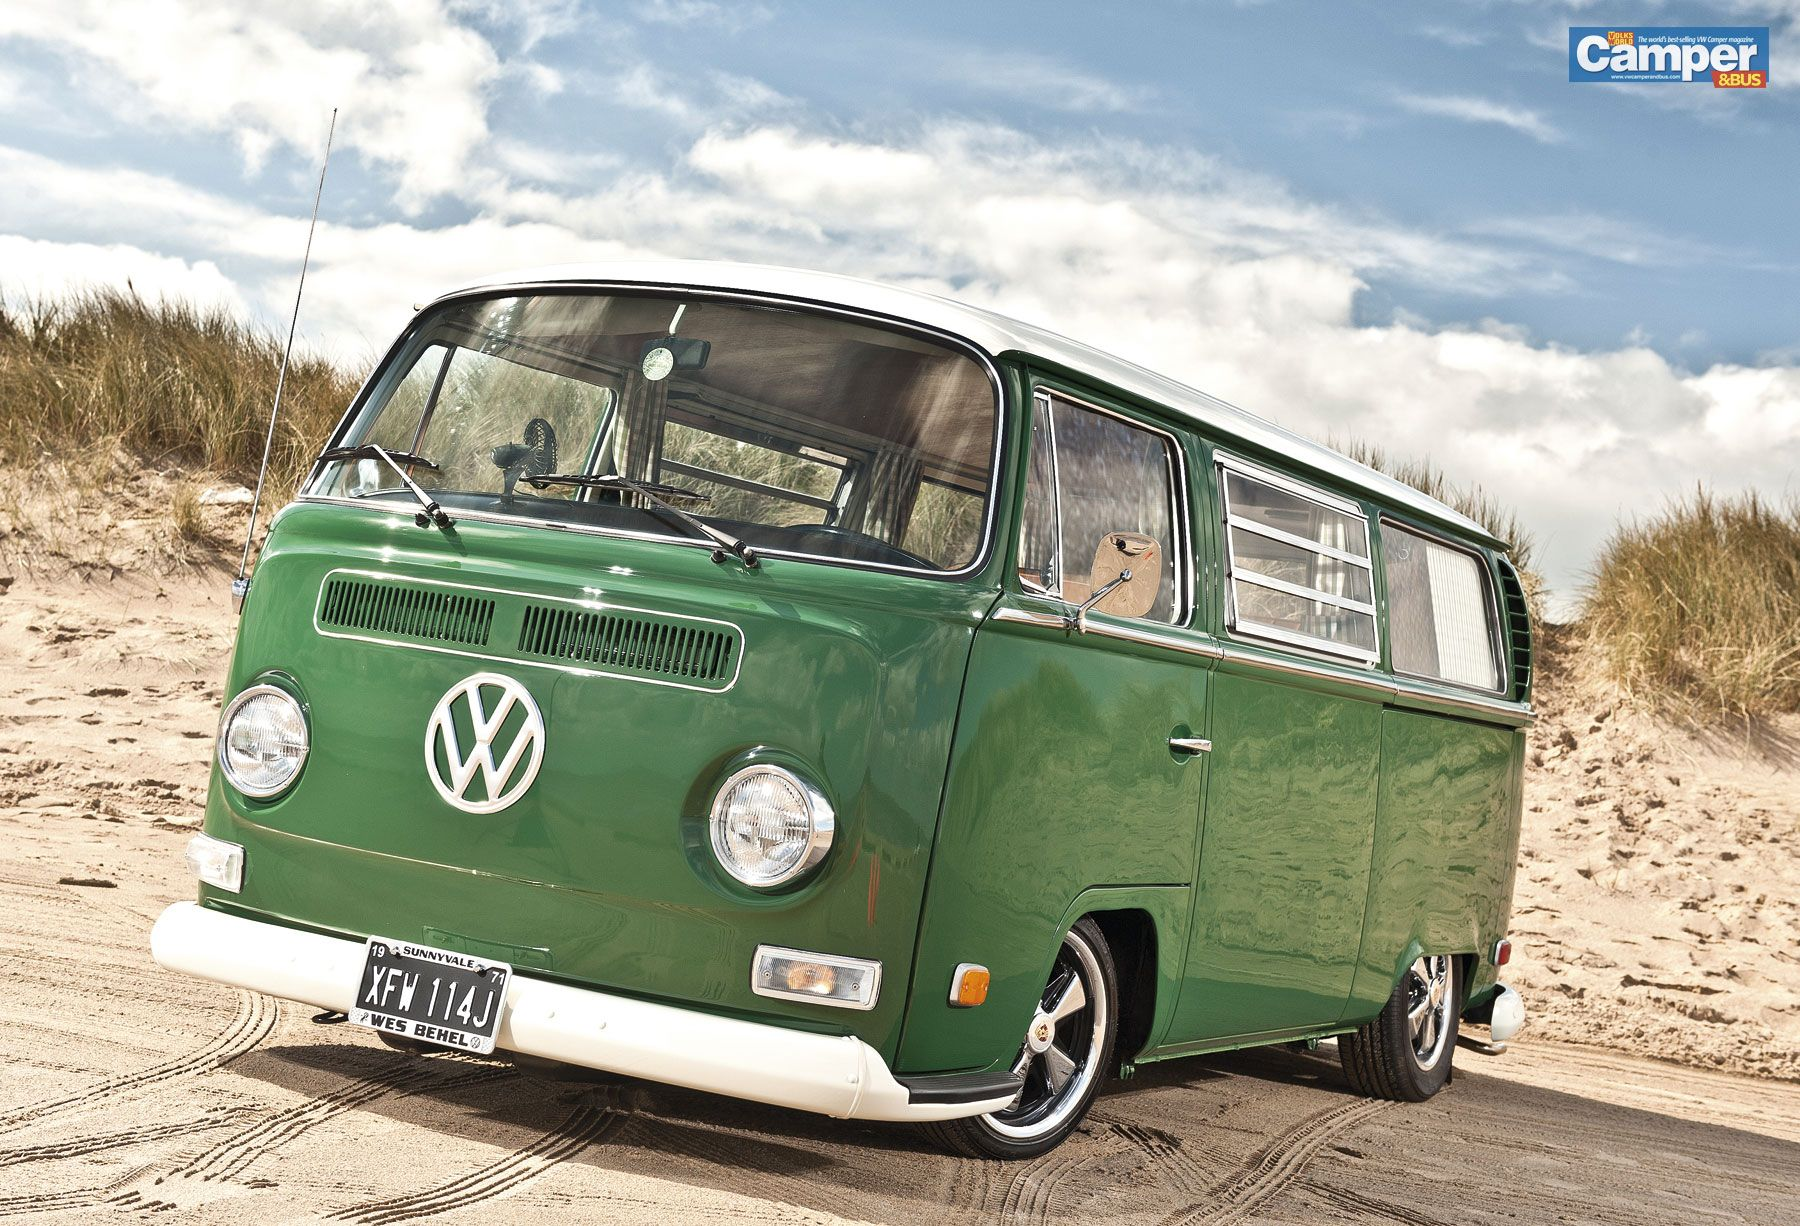 Camper Bus Wallpaper From July 2012 Issue Vw Camper And Bus Vintage Vw Bus Vw Bus Camper Vw Camper